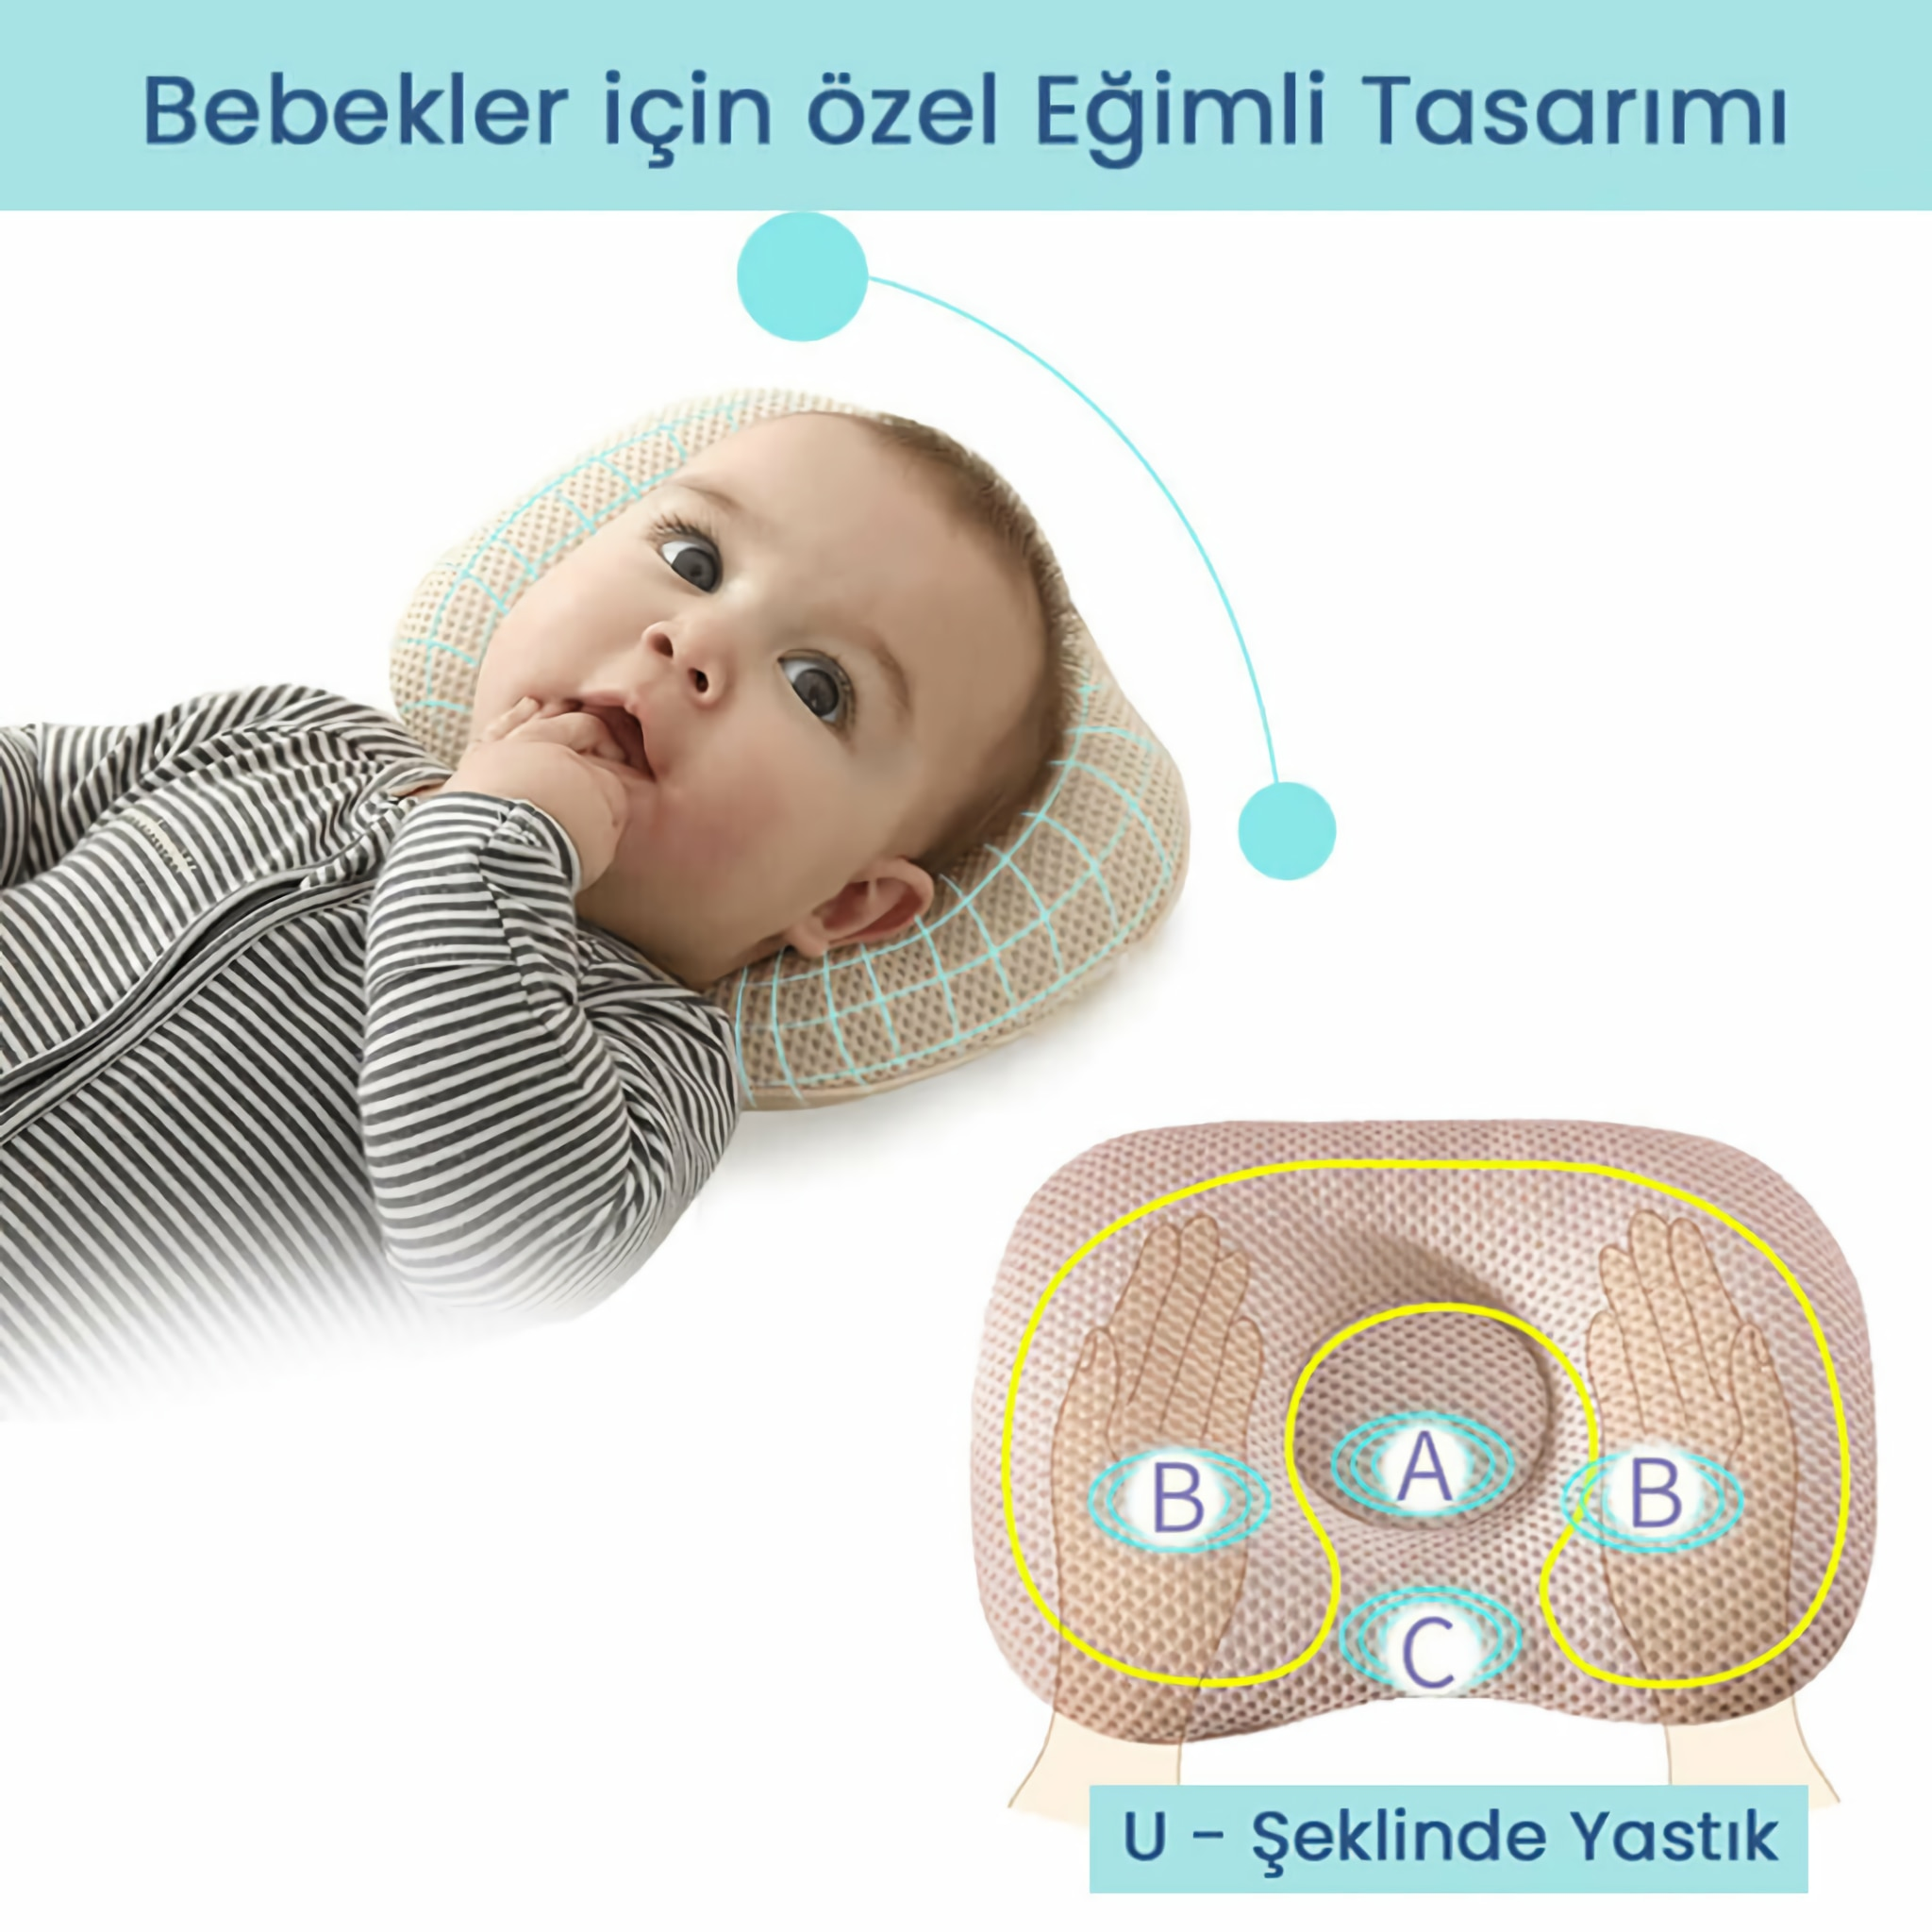 A FLAT HEAD SHAPED BABY PILLOW IN THE SHAPE OF U ( RECOMMENDATION OF PEDIATRICIANS ) enlarge